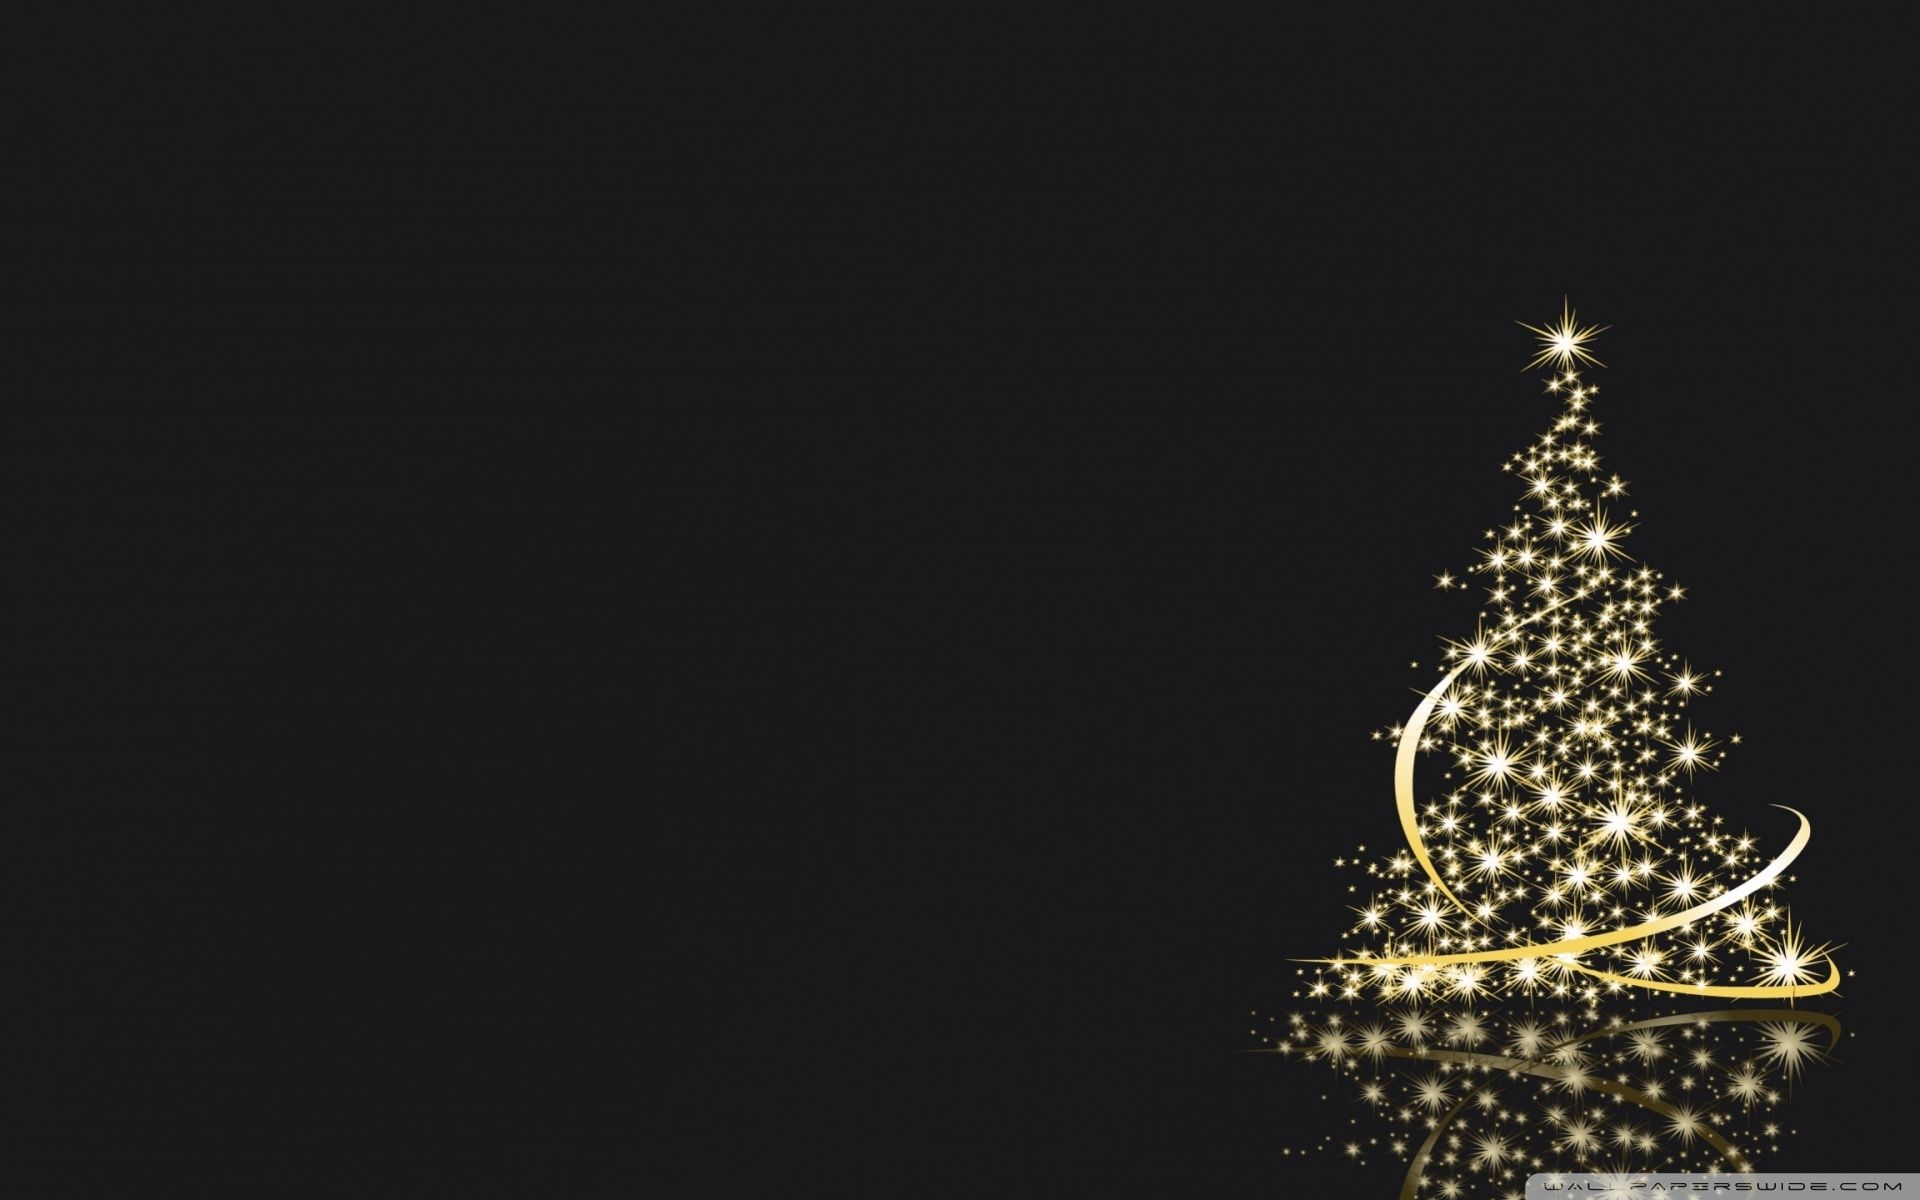 Top 24 Best Free Hd Christmas Wallpapers: Top 10 Free Christmas Wallpapers For Ubuntu Desktop